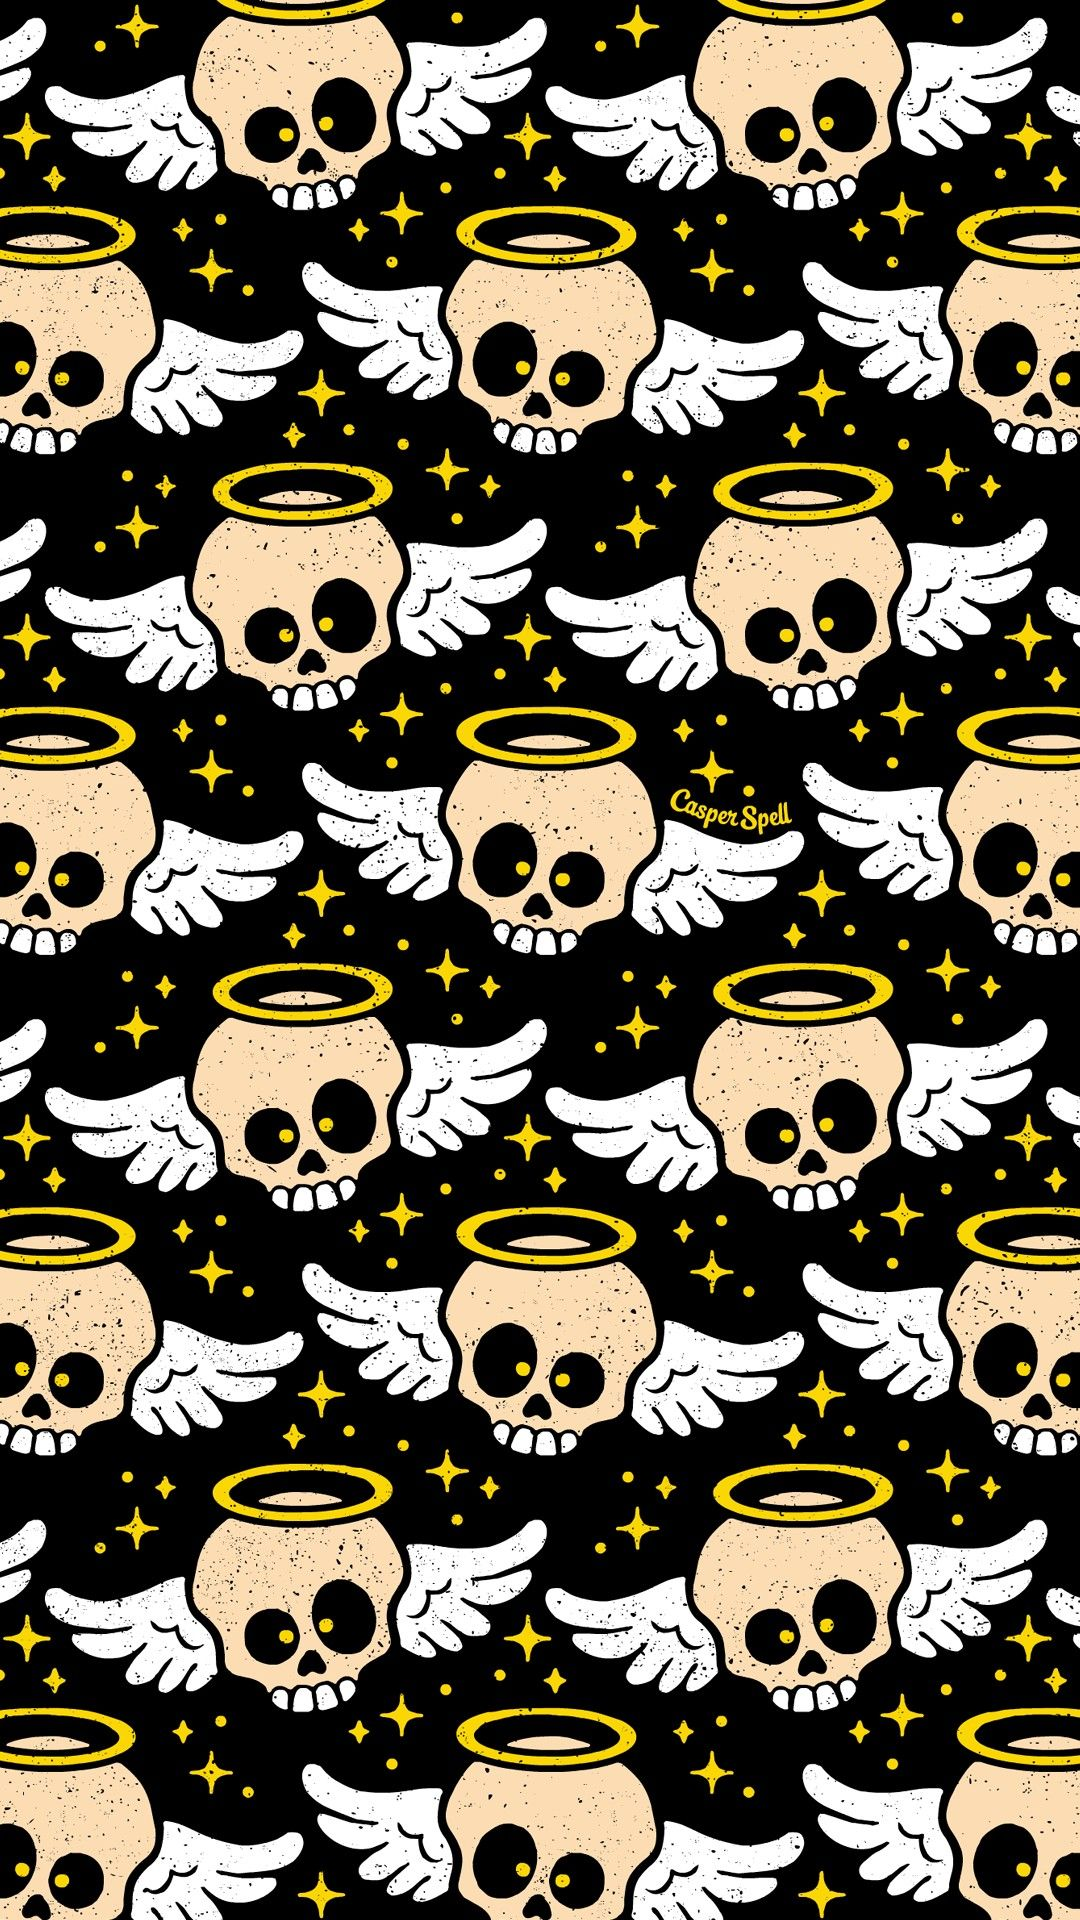 Angel Skull Skulls Macabre Spooky Creepy Cute Halloween Wallpaper Repeat Pattern Patterns Iphone Phone Back With Images Halloween Wallpaper Skull Wallpaper Cute Wallpapers